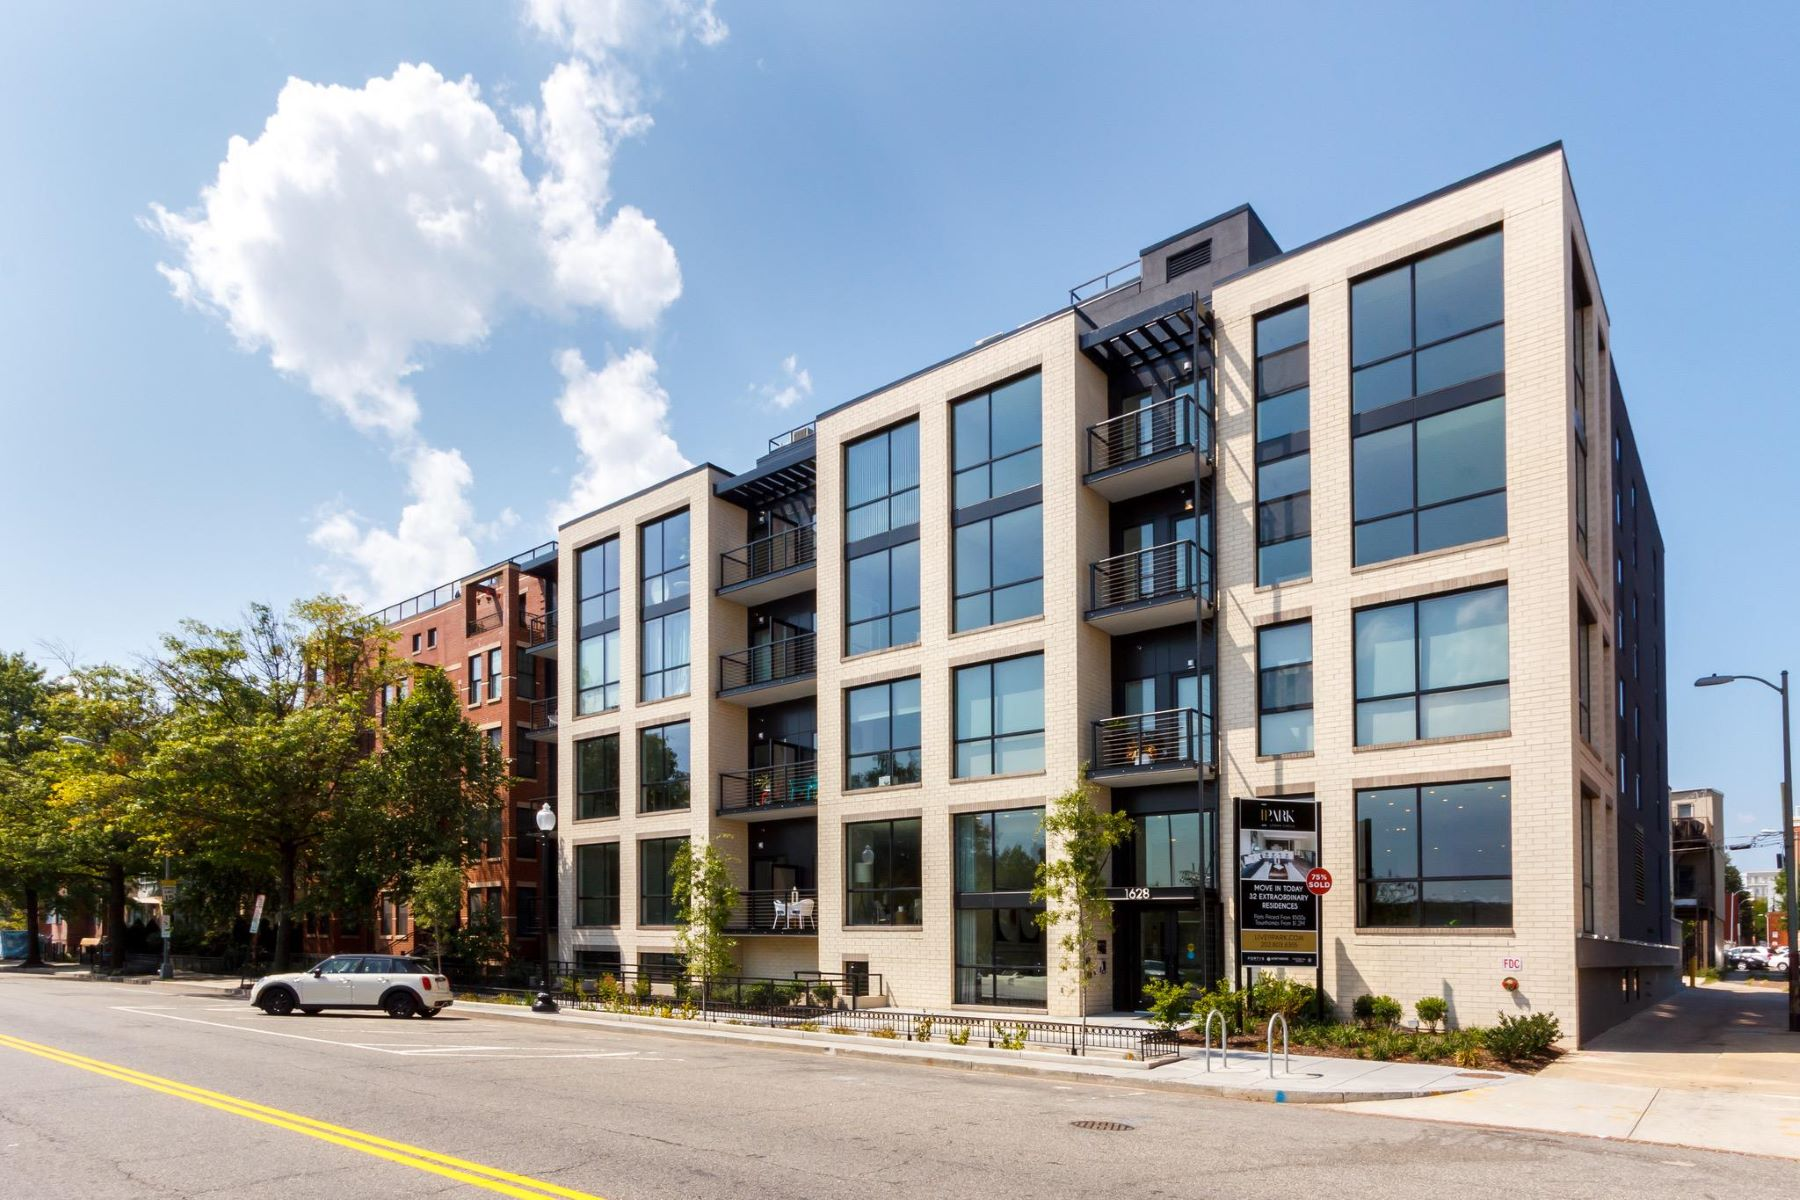 Other Residential for Sale at 1628 11th St NW #108 1628 11th St NW #108 Washington, District Of Columbia 20001 United States